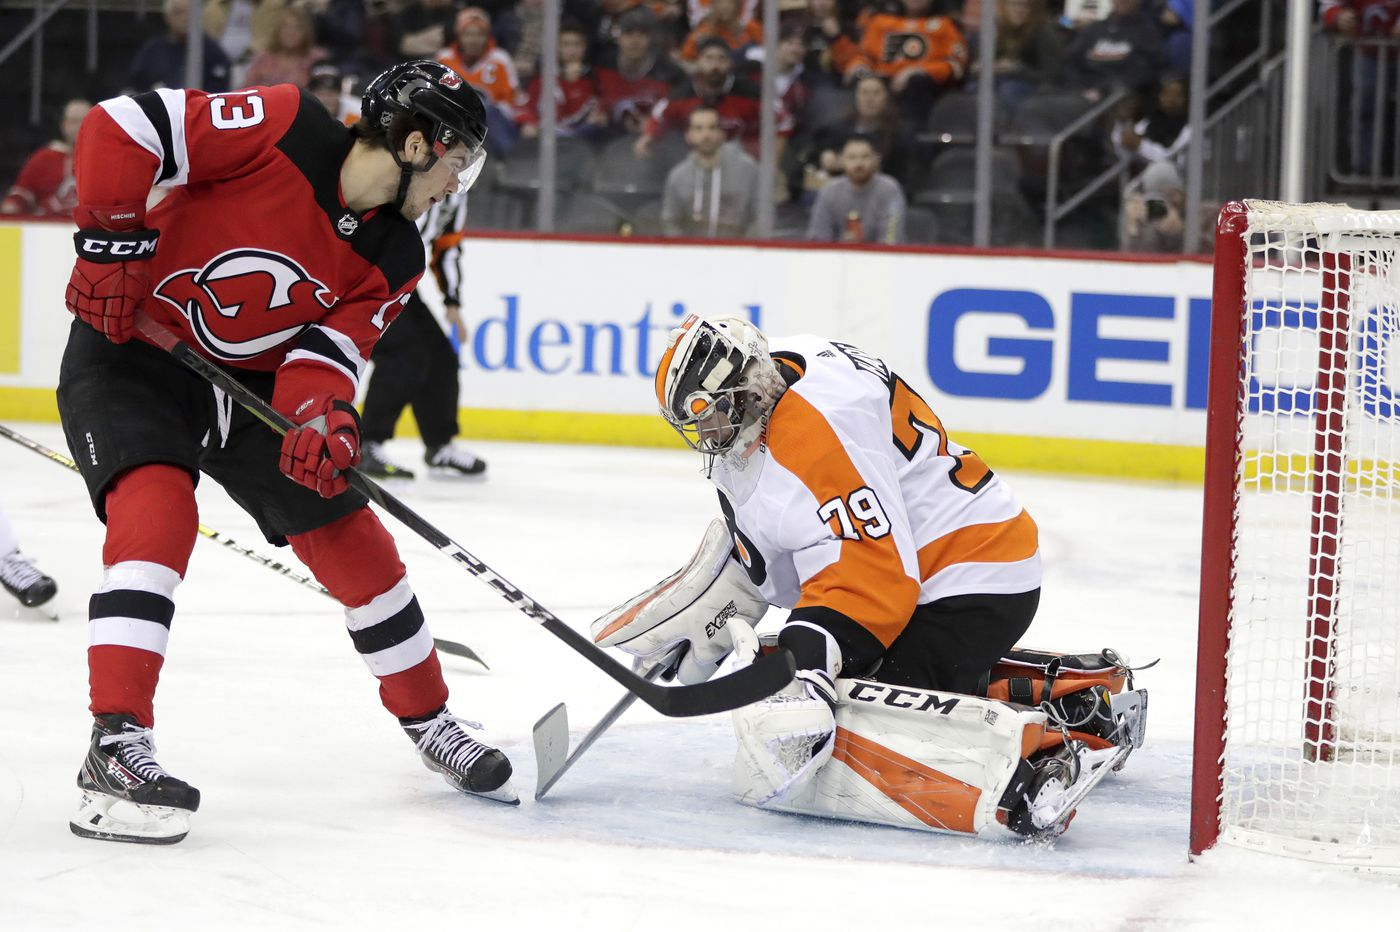 Cover your eyes, here are five observations from Saturday's Flyers' loss to the Devils